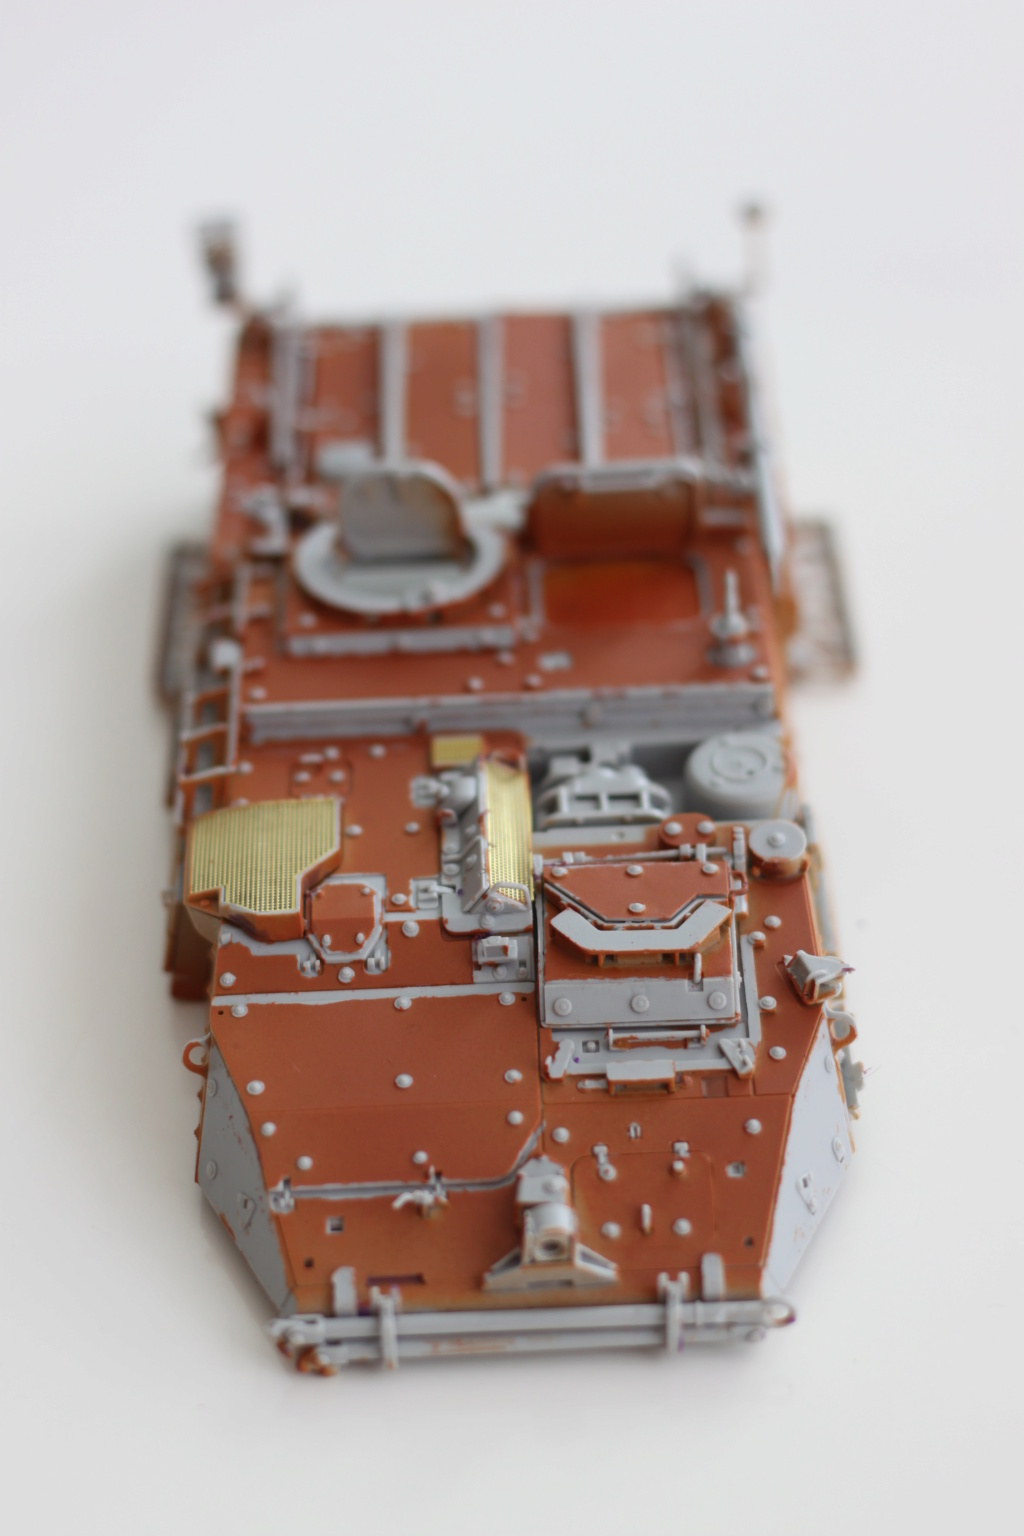 M1129 Stryker Mortar Carrier Vehicle MC-B Tumpeter 1/35 Img_3843